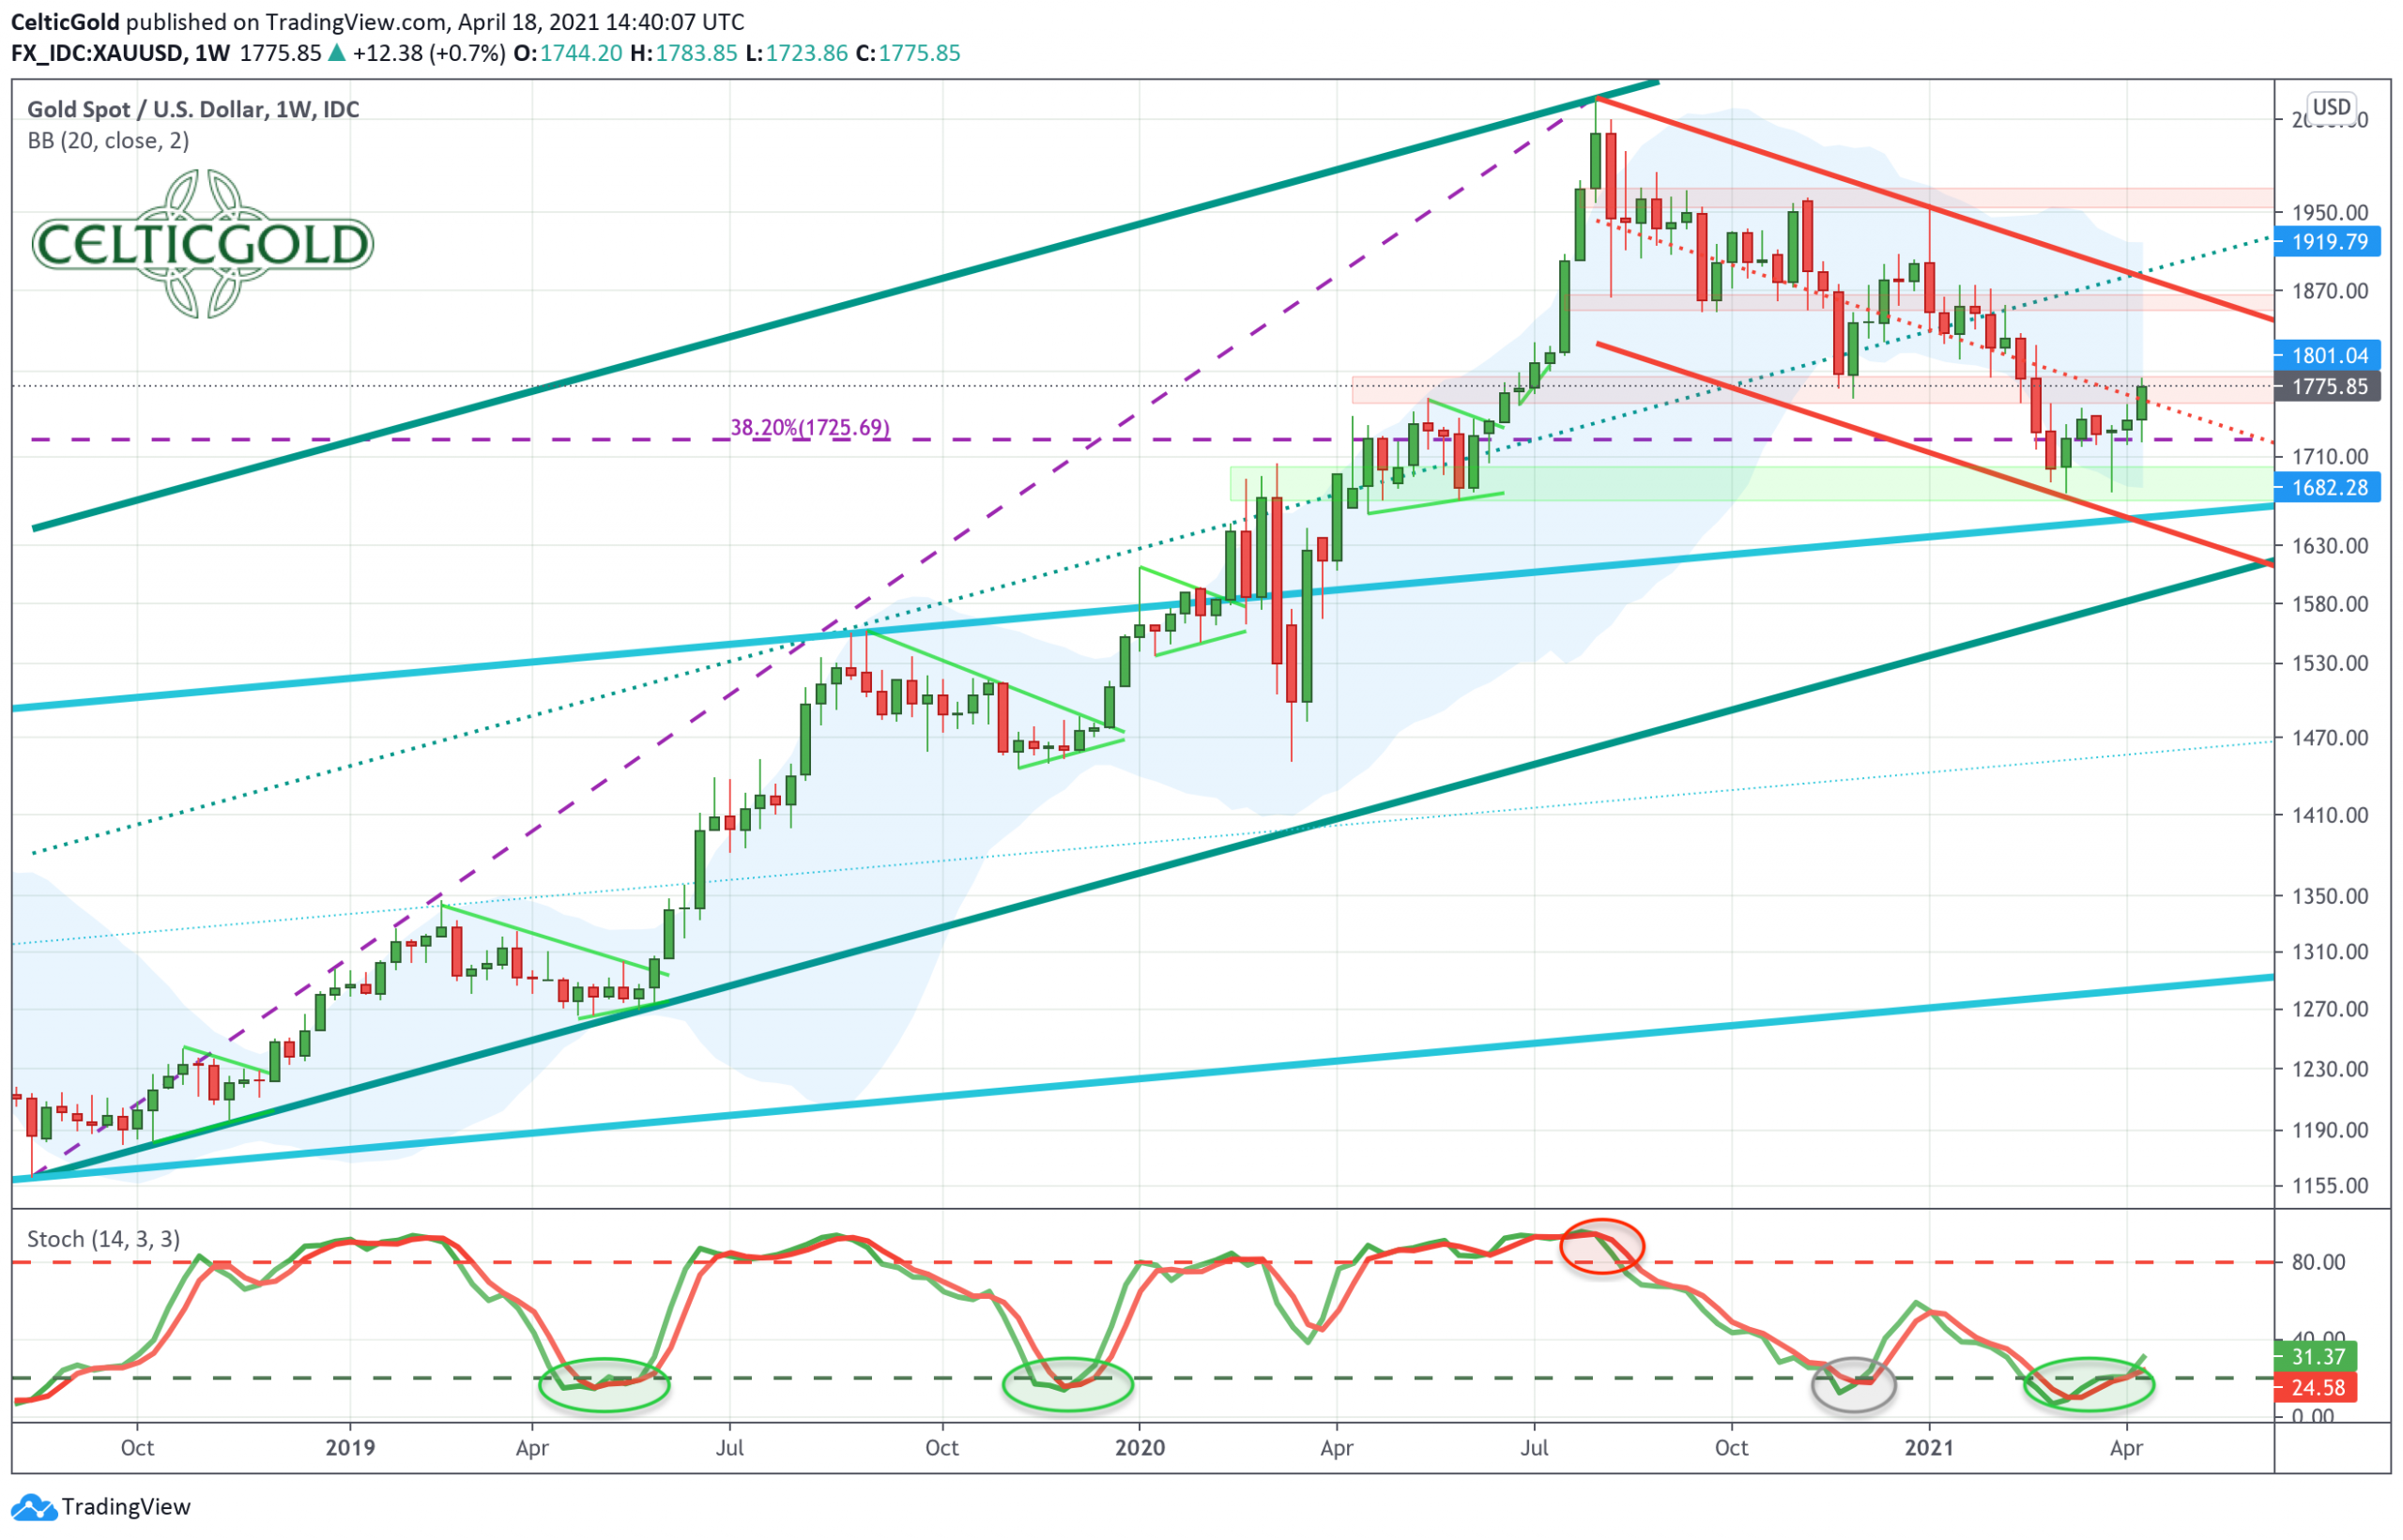 Gold in US-Dollars, weekly chart as ofApril 18th, 2021. Source: Tradingview. Gold- The turnaround has started.